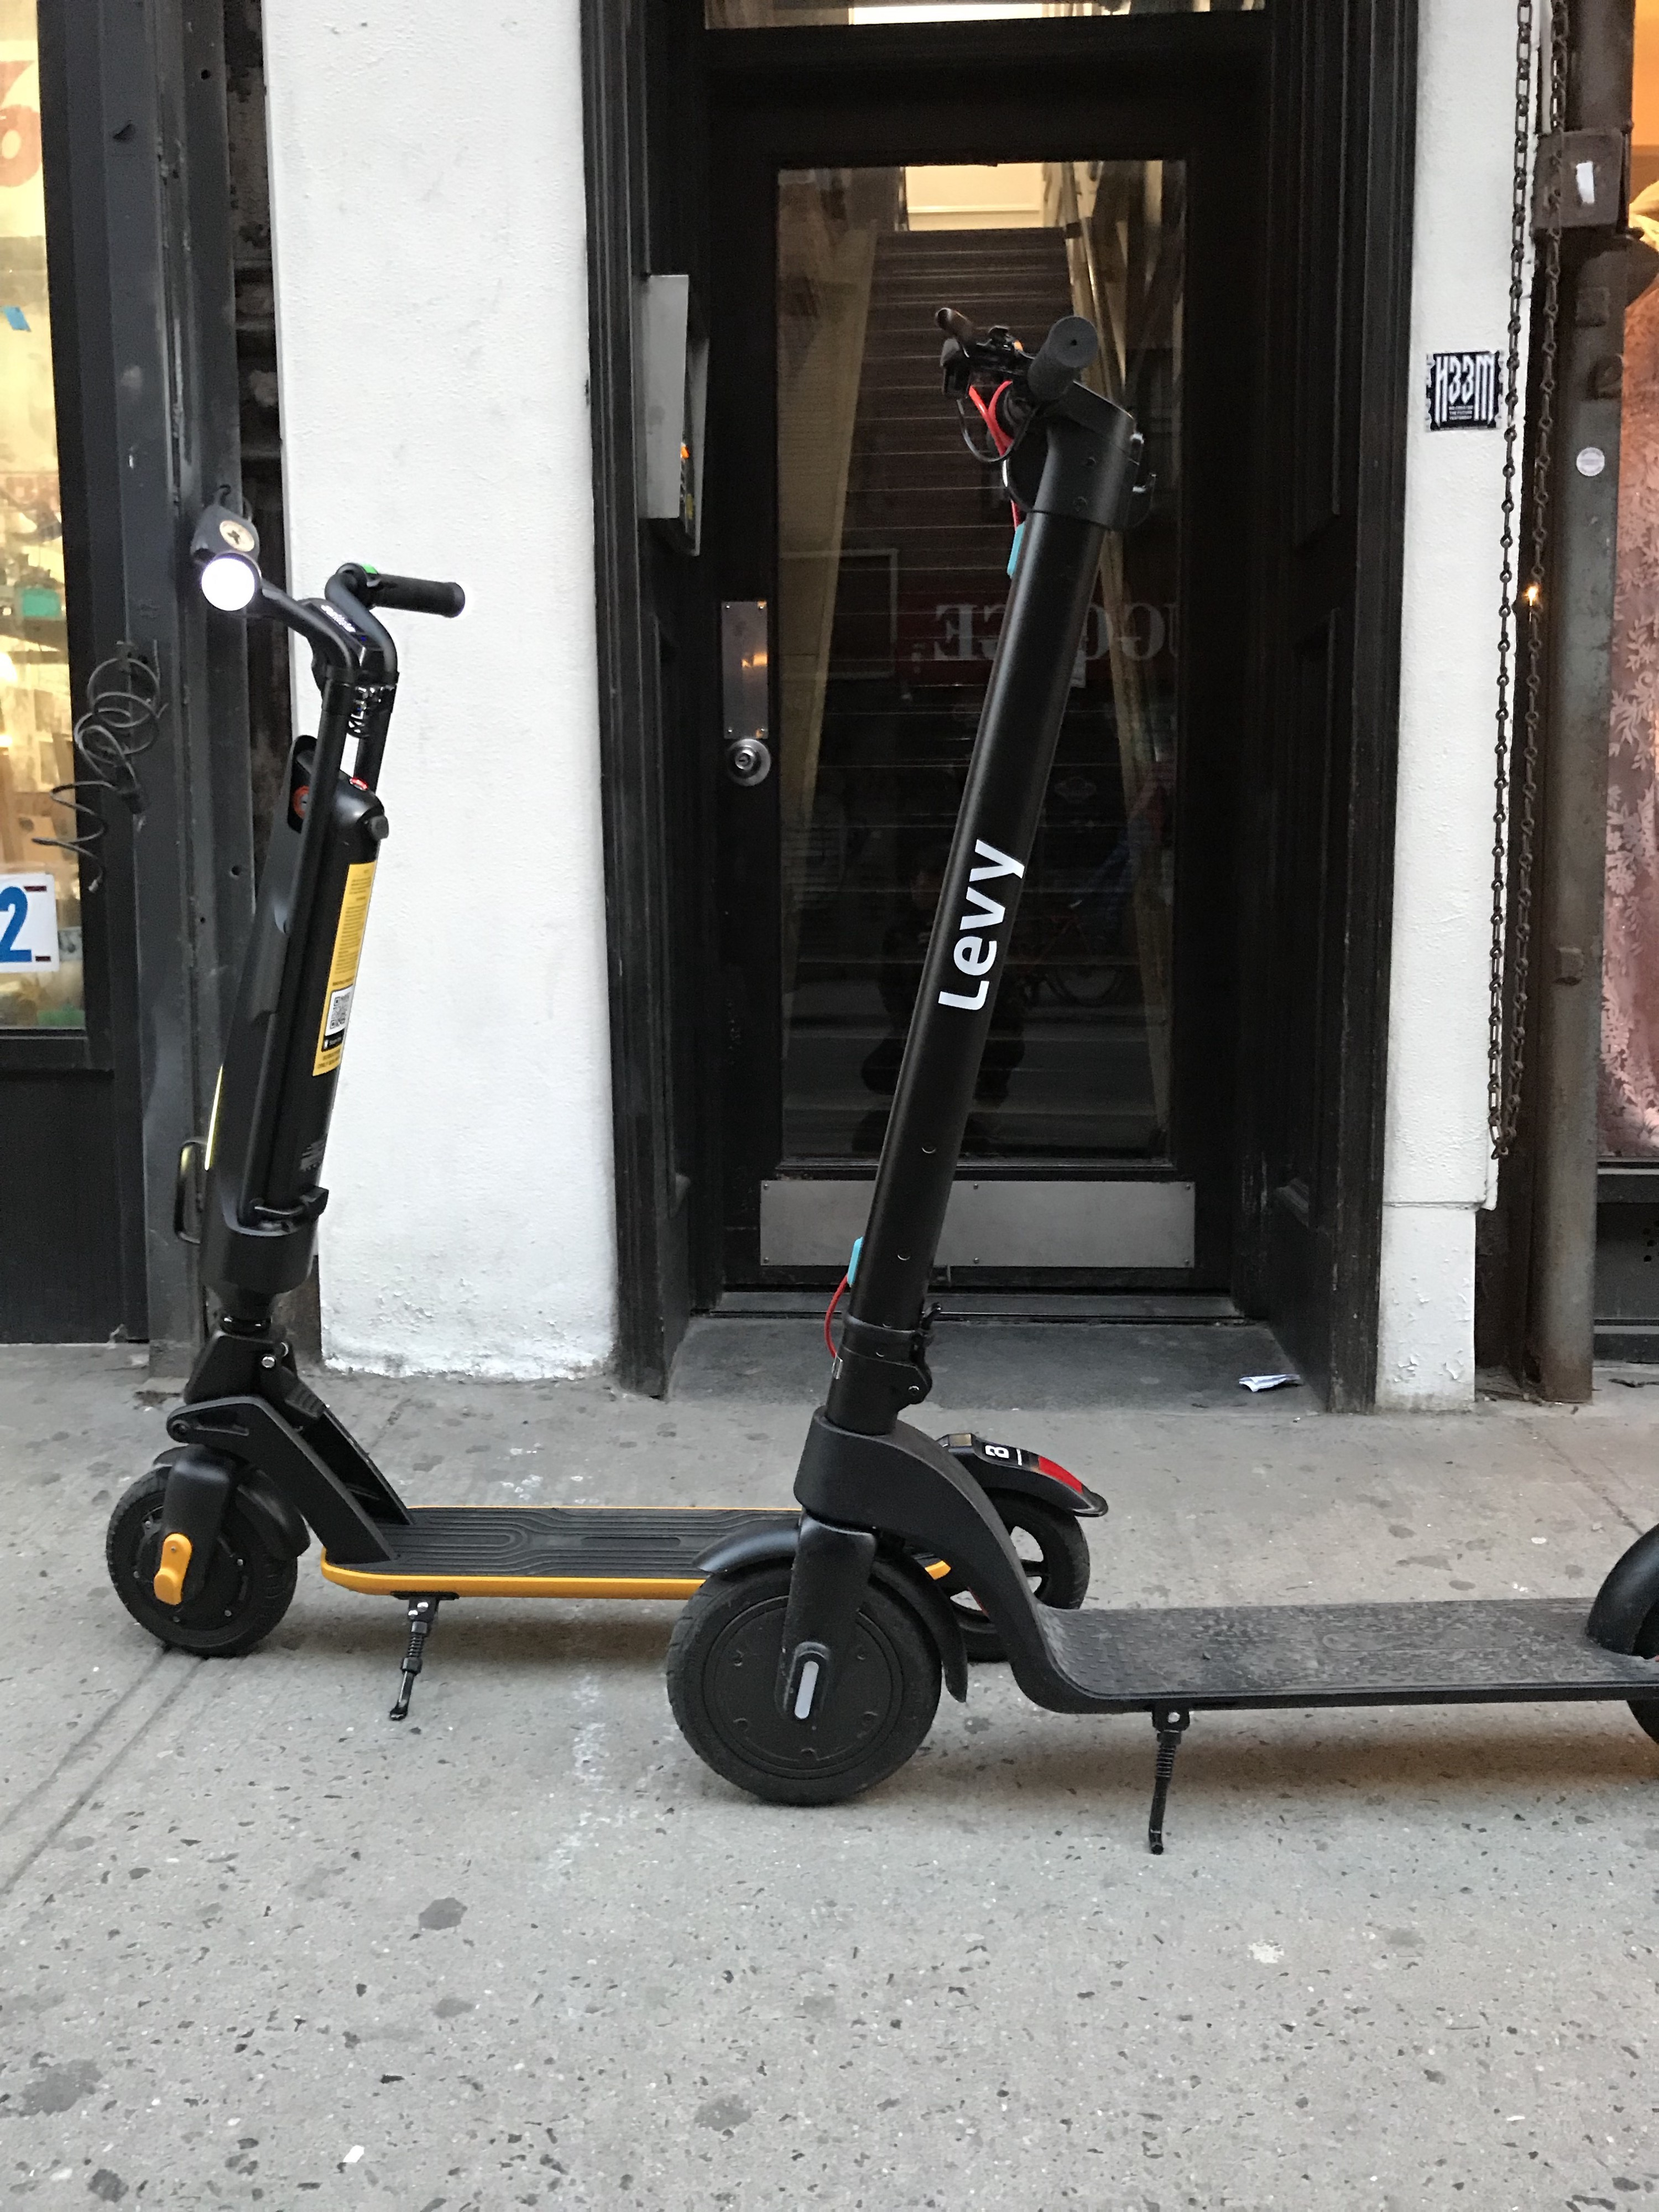 Buying Or Renting An Electric Scooter In Nyc By Wes Alopp Medium